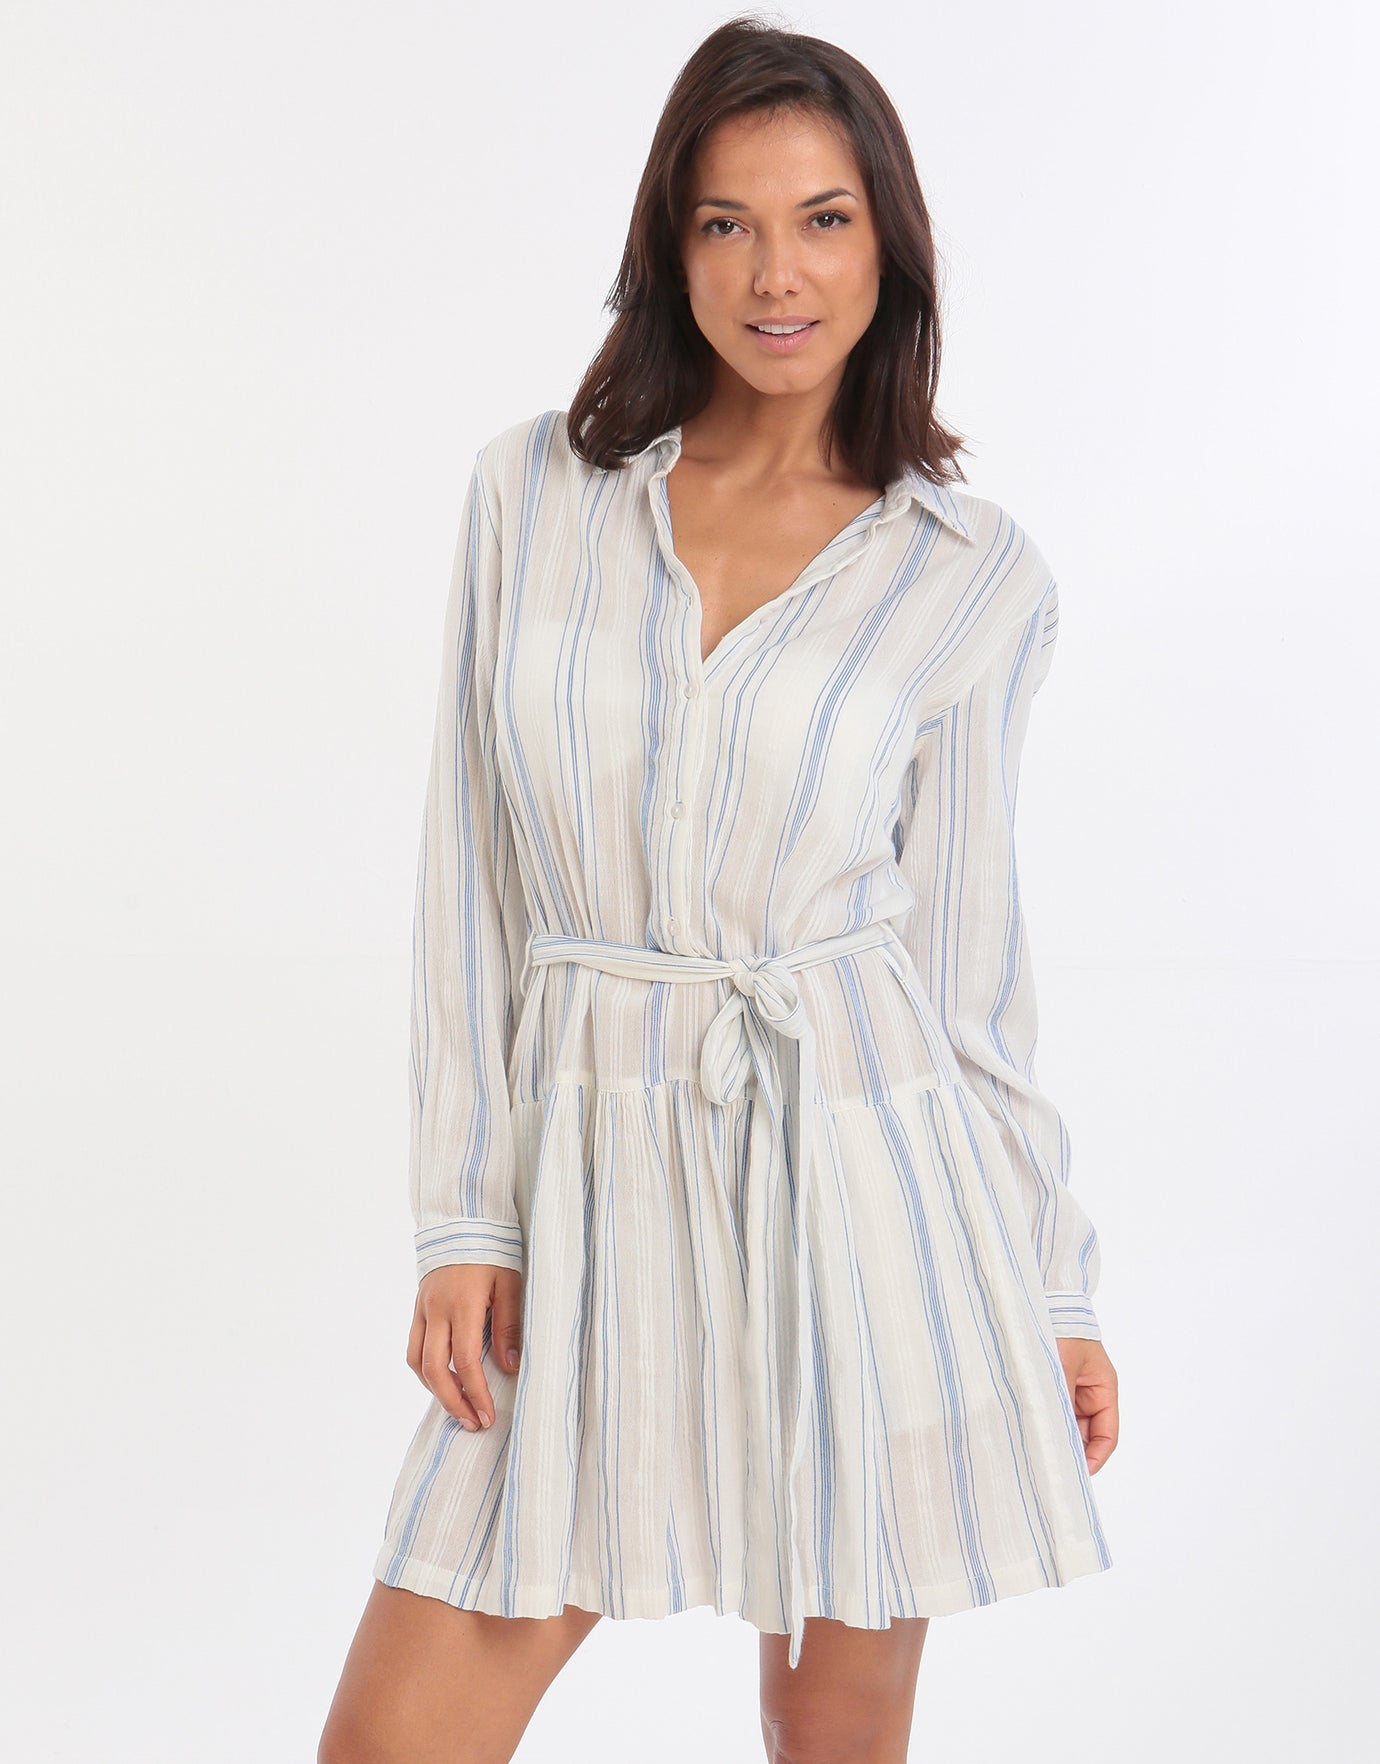 Melissa Odabash Amelia Belted Shirt Dress - Blue Stripe